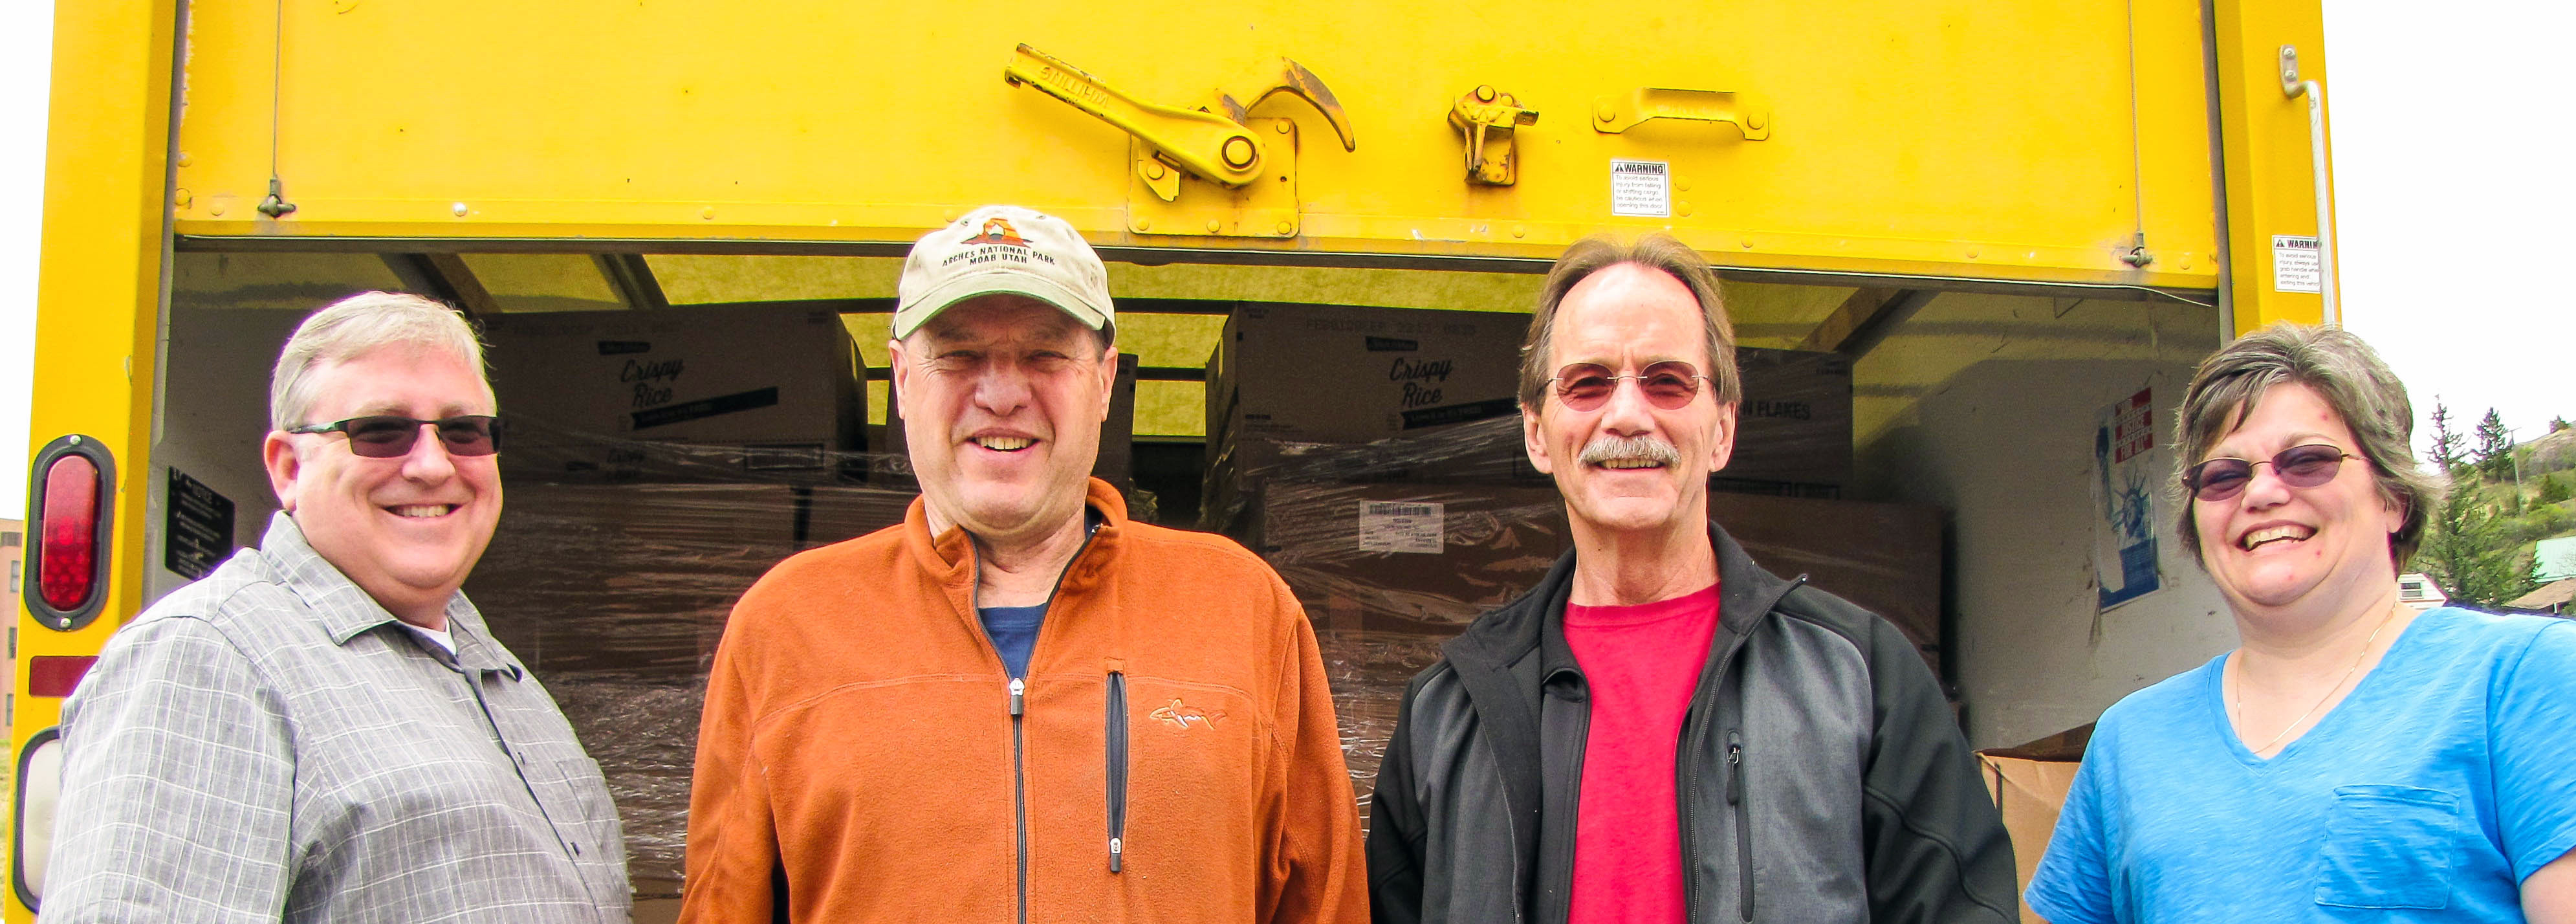 Pictured: Larry and Walter distributing senior commodities in Boulder, Montana.